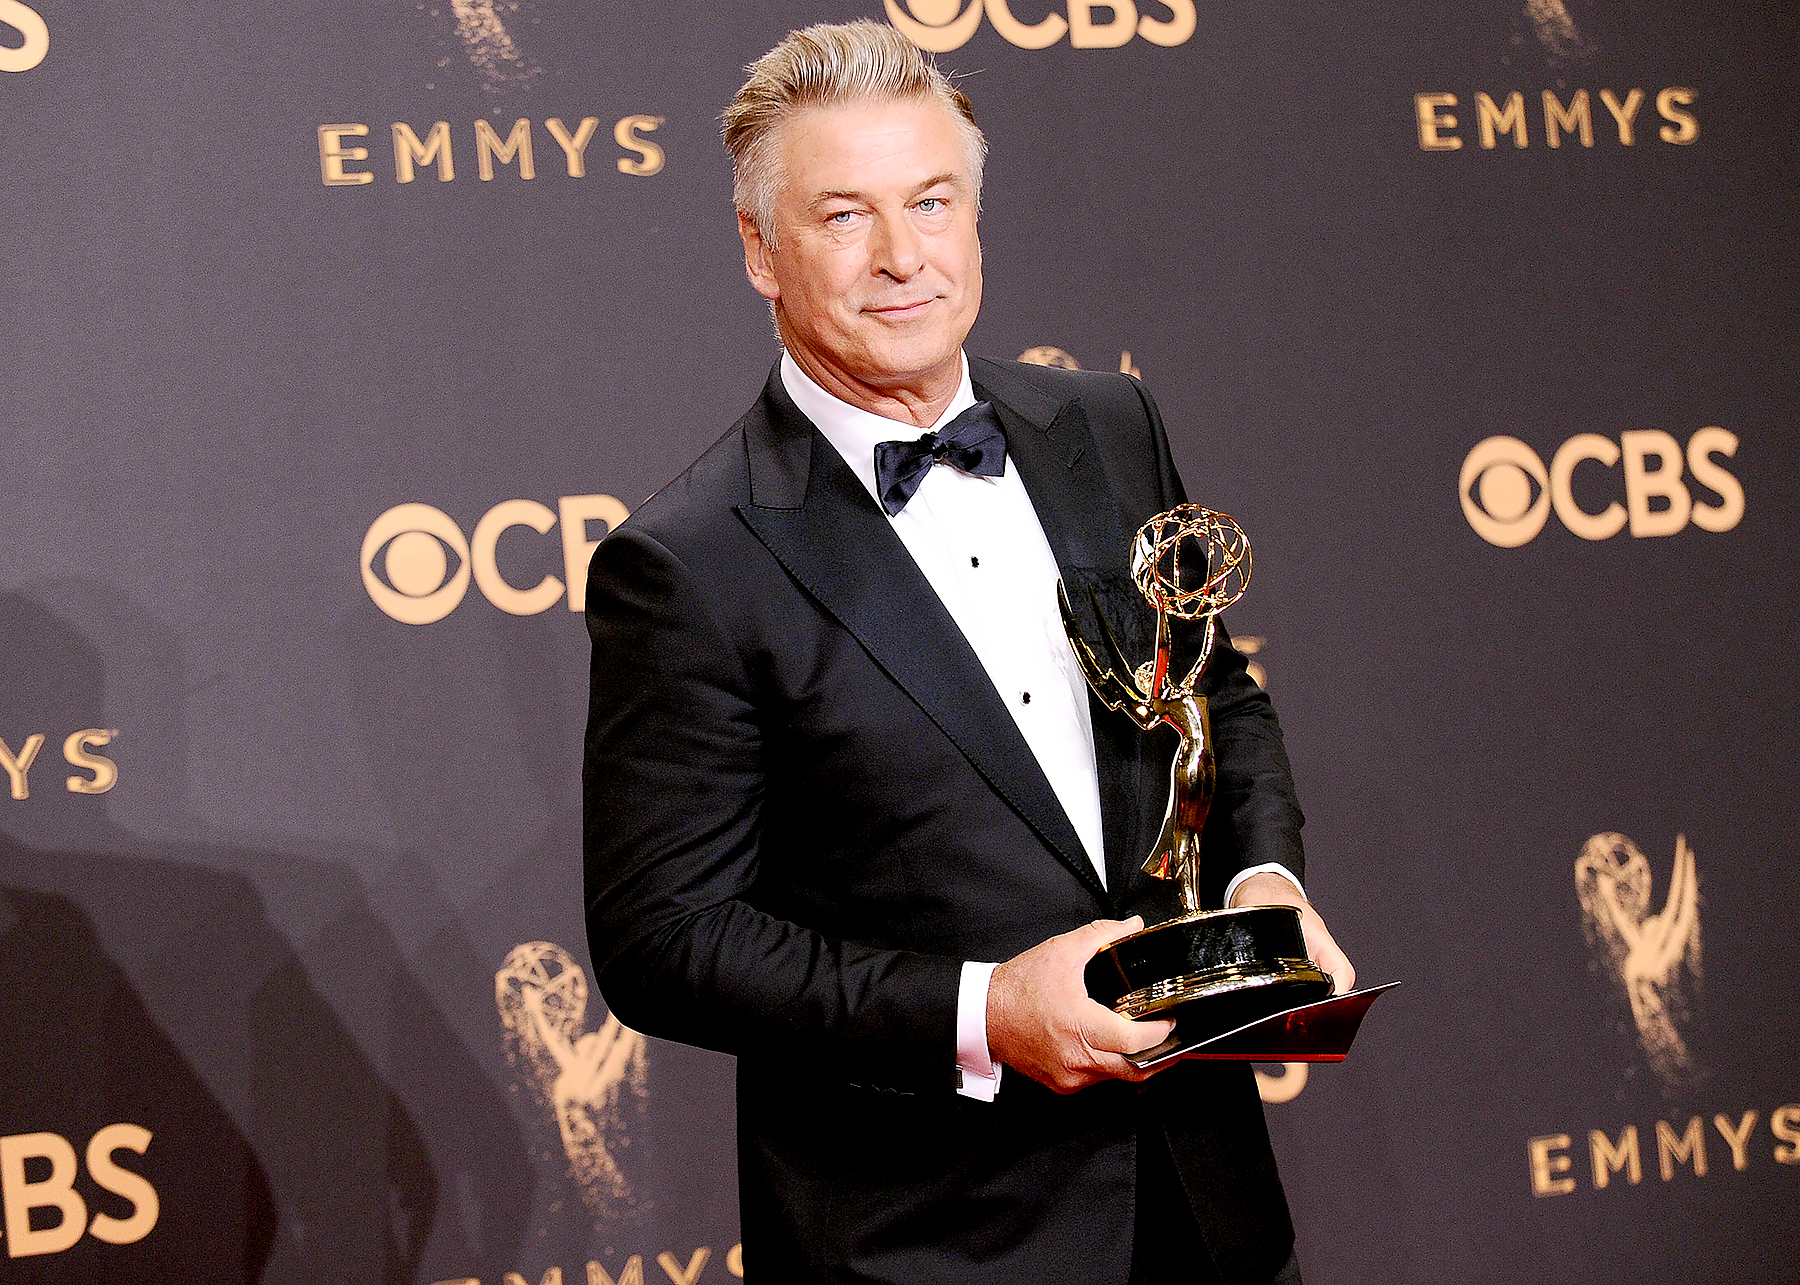 Alec Baldwin poses in the press room at the 69th annual Primetime Emmy Awards at Microsoft Theater on September 17, 2017 in Los Angeles, California.